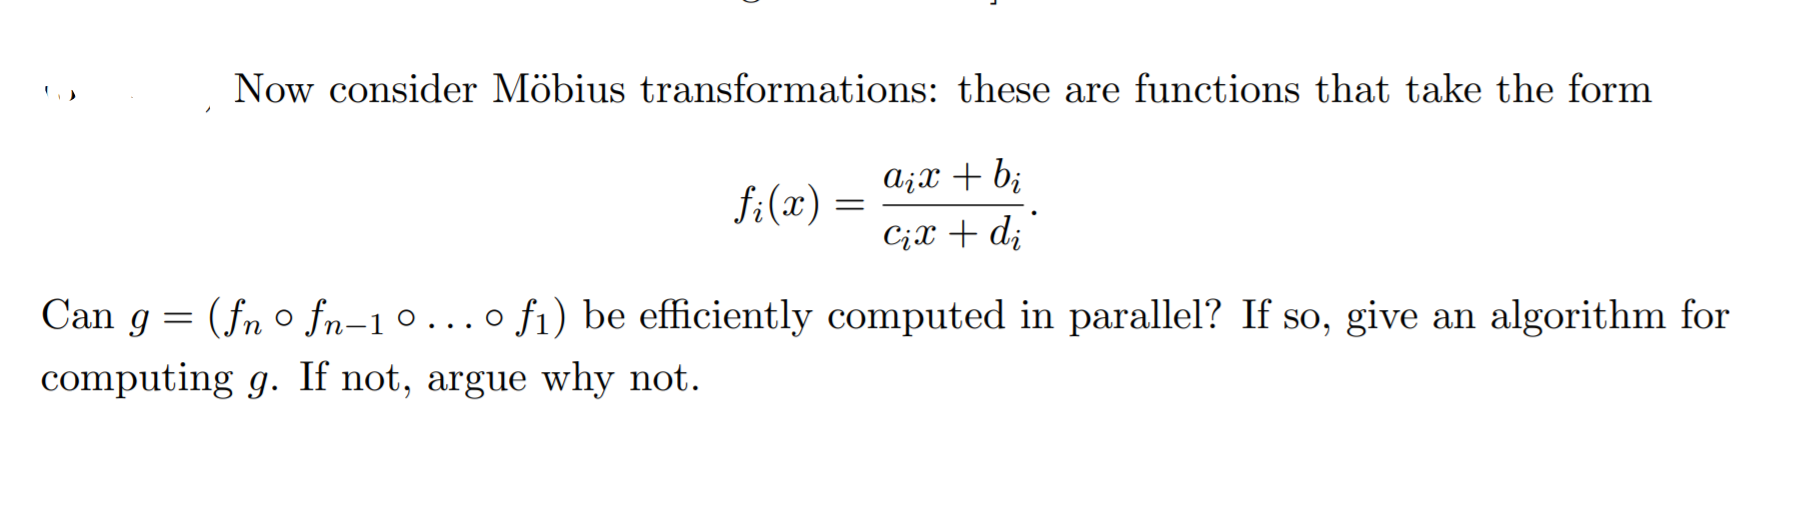 Now consider Möbius transformations: these are functions that take the form fi(x) = AiX + bi Cix + di Can g = (fn o fn-10...o